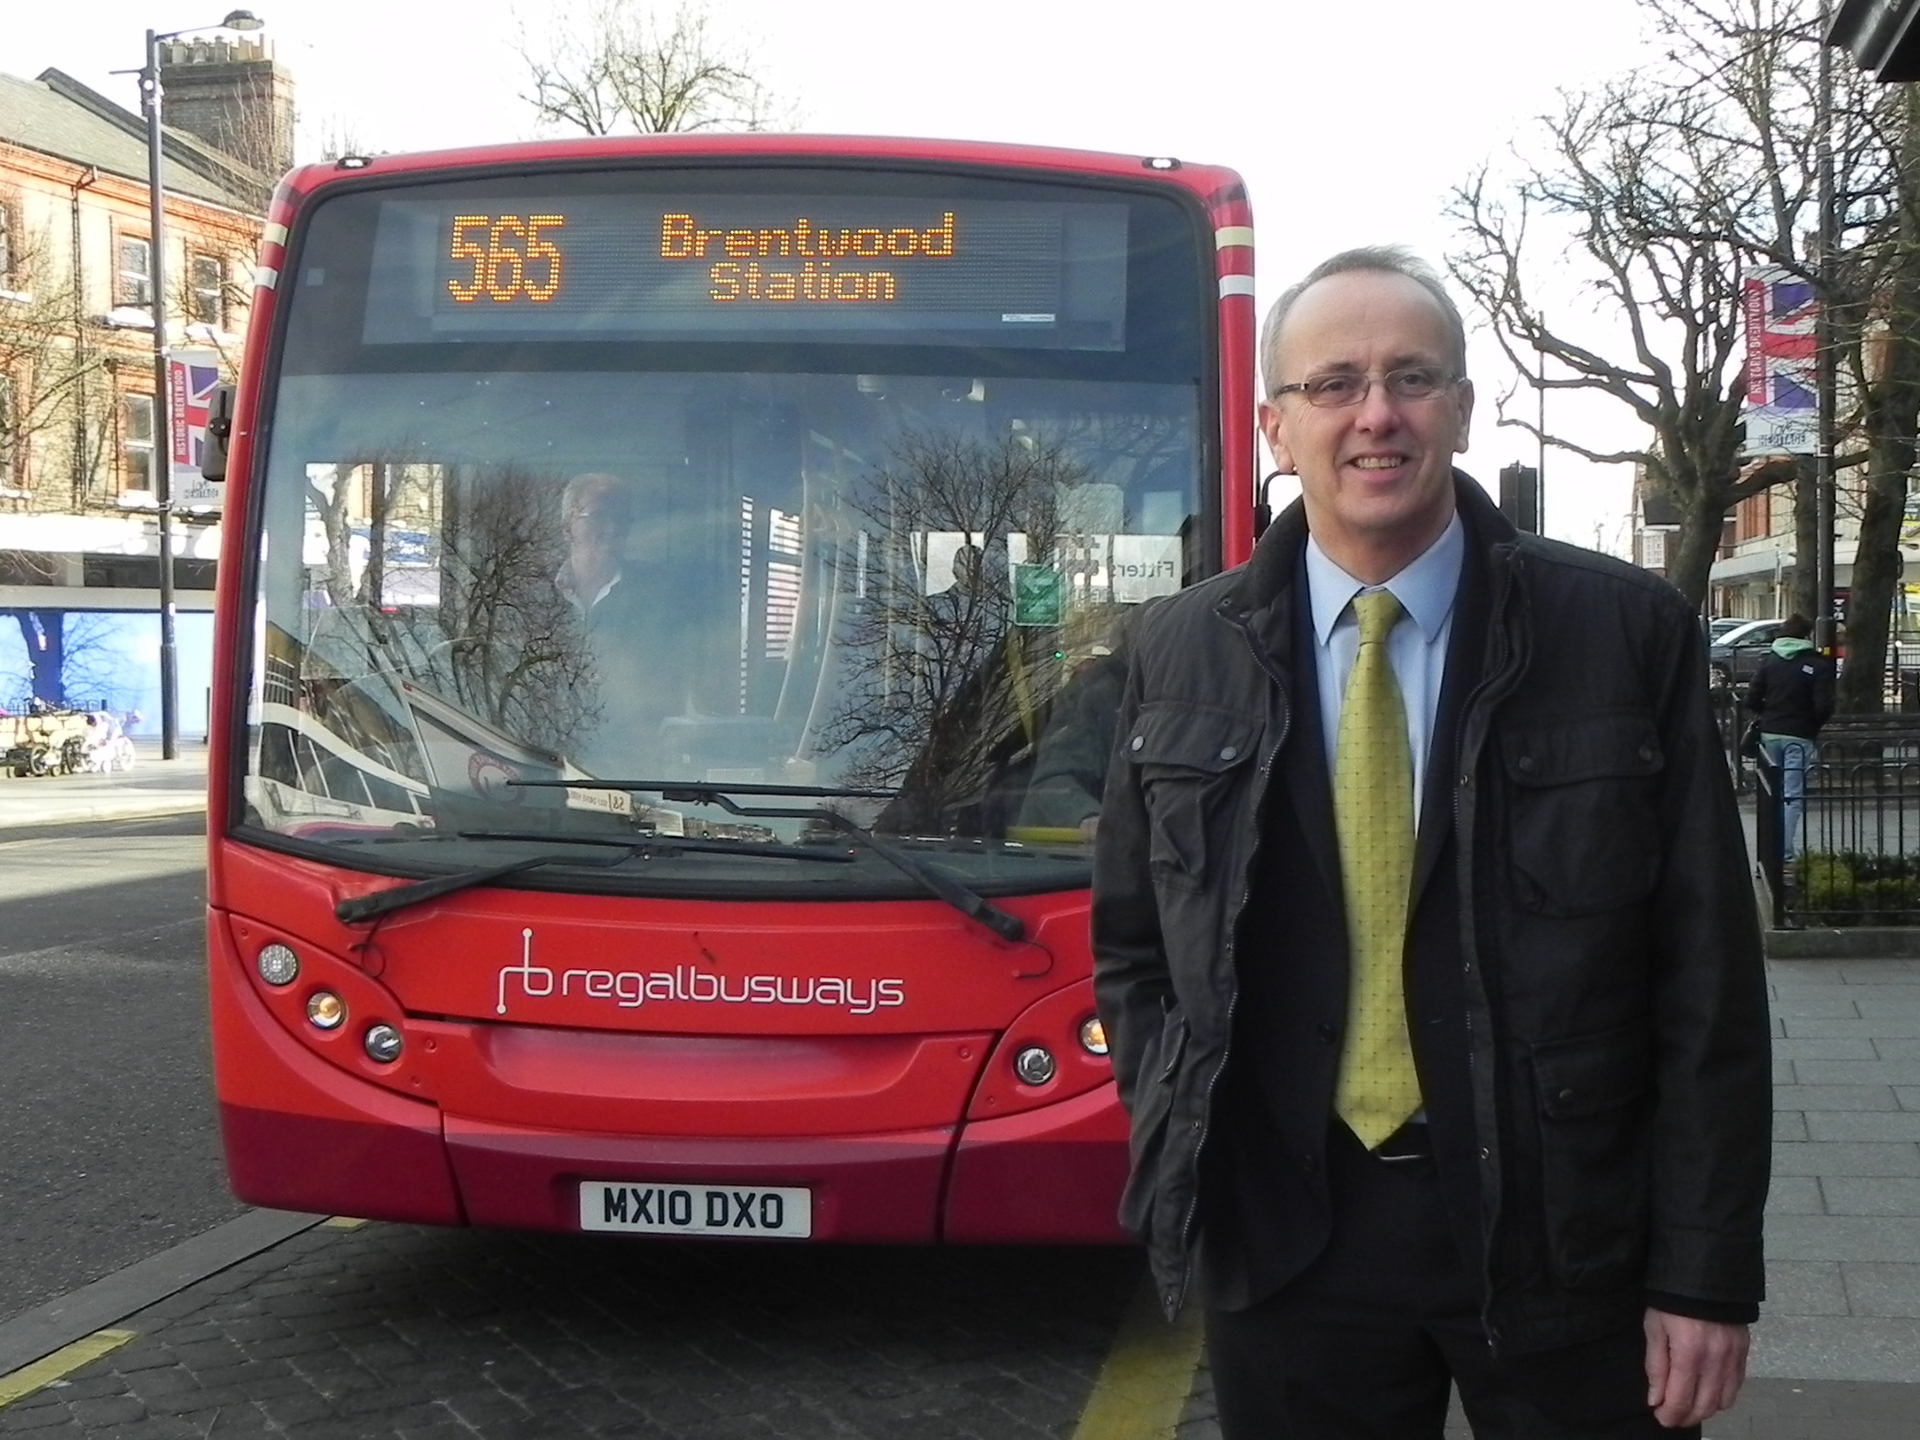 David Kendall campaigning in Brentwood for better transport